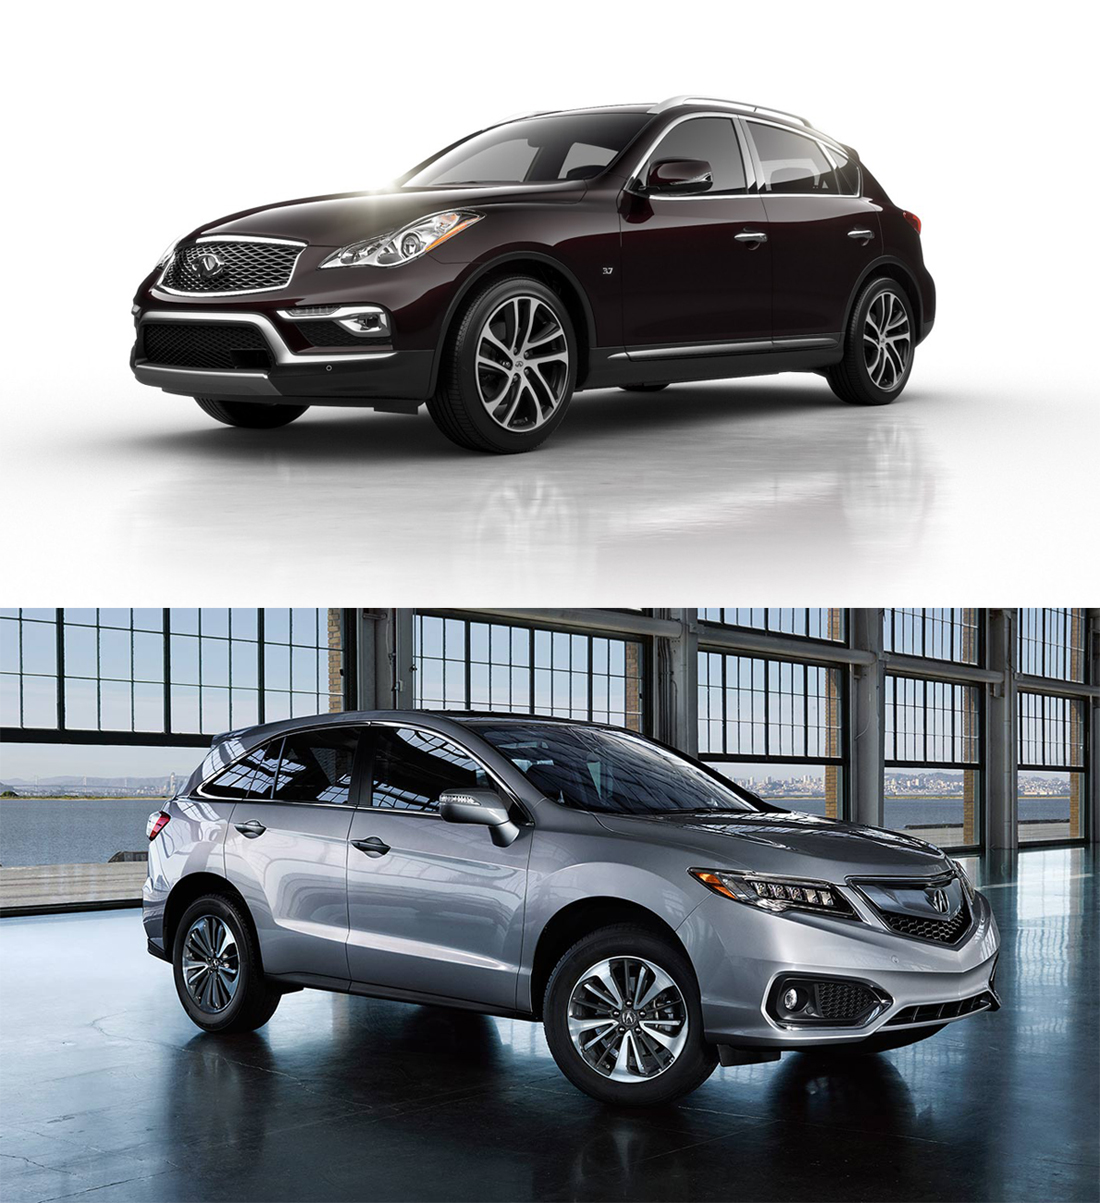 Battle Of Japanese Crossovers: Infiniti QX50 Vs. Acura RDX